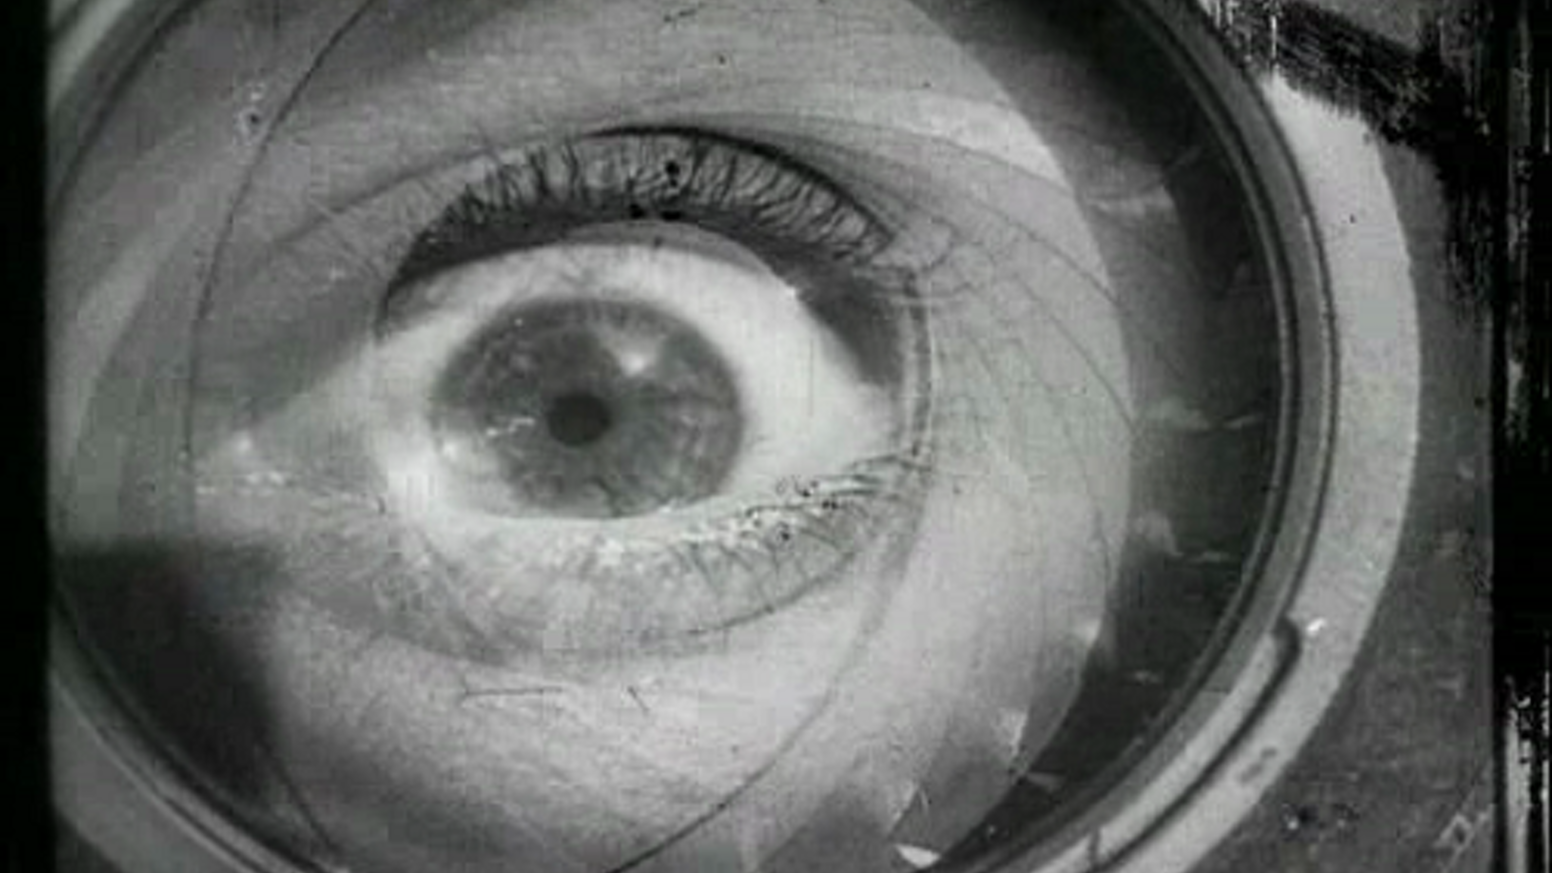 """A release of Dziga Vertov's brilliant silent film """"Man With a Movie Camera"""" with a brand new all-original score of 51 pieces of music. You can watch the completed new version of the film on YouTube & Vimeo."""